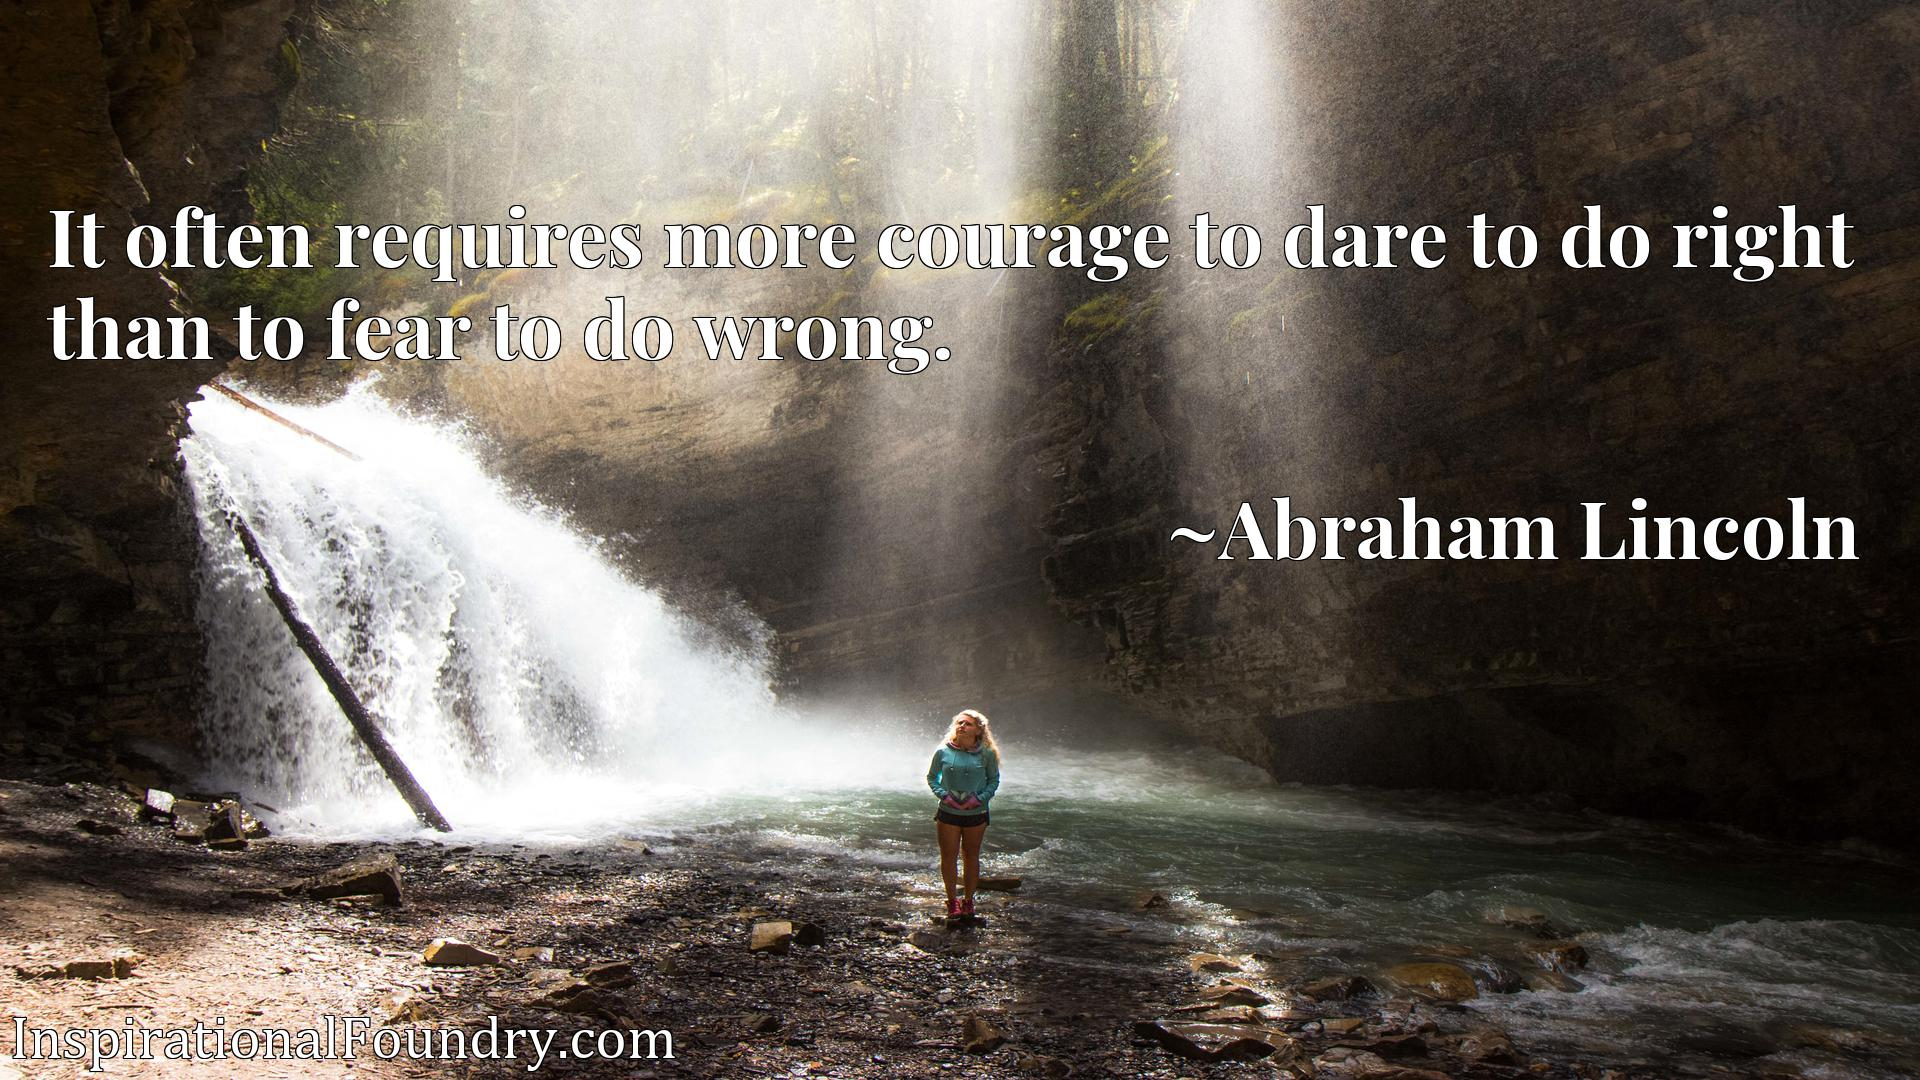 It often requires more courage to dare to do right than to fear to do wrong.